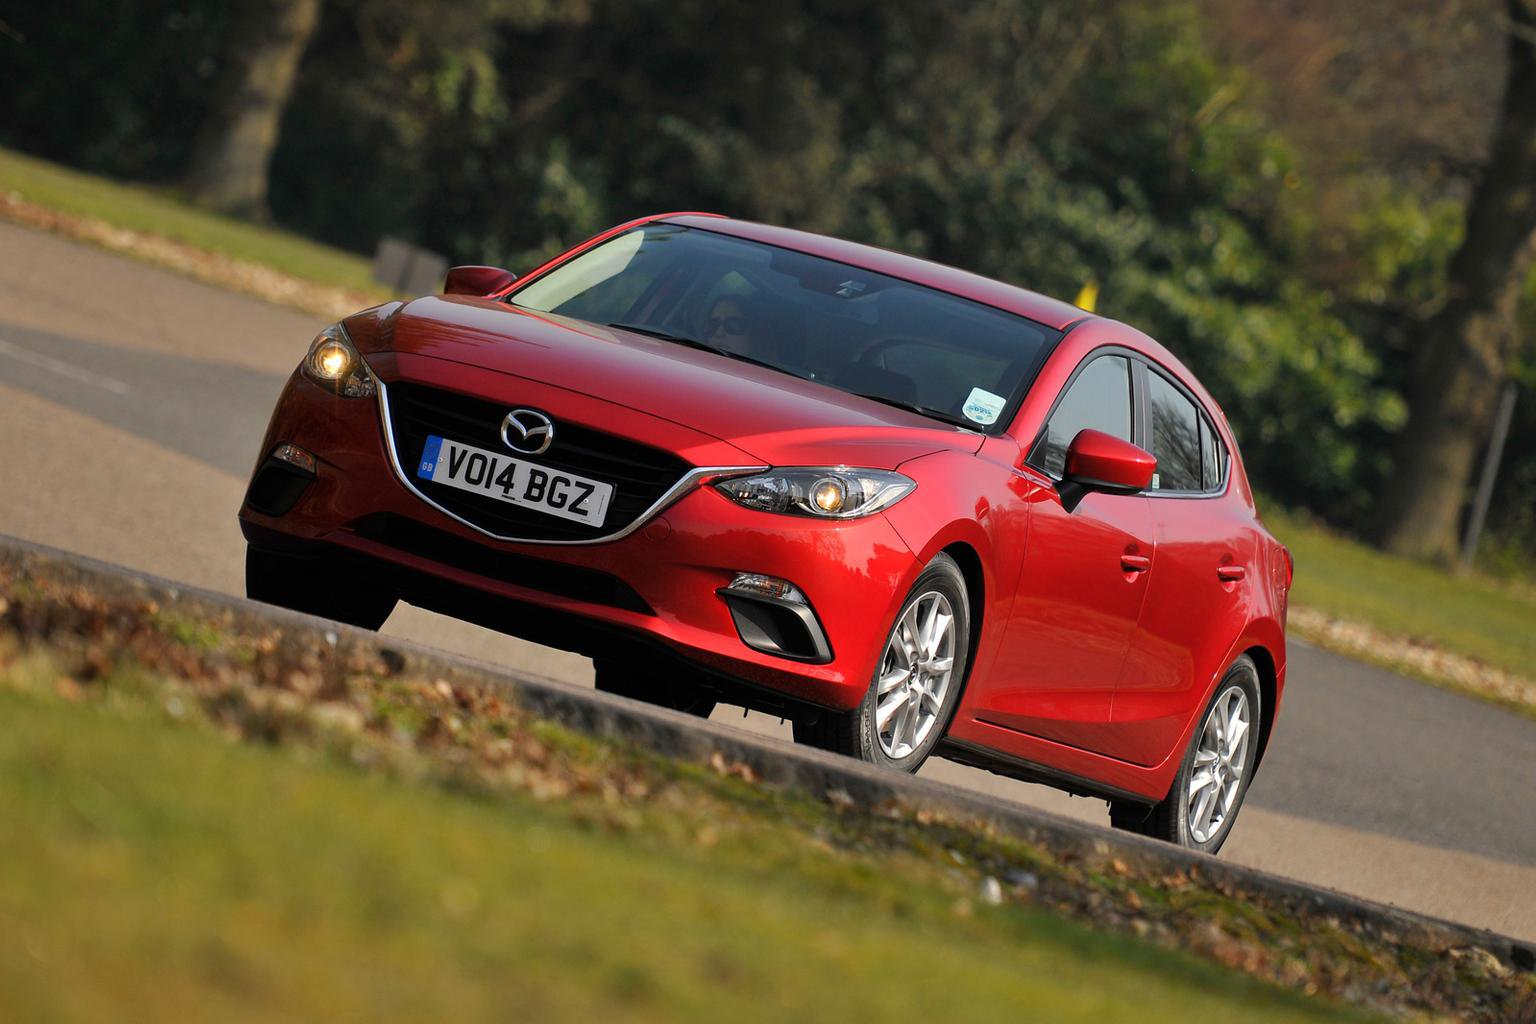 Our cars: Mazda 3, Nissan Qashqai, Hyundai i10 and Kia Carens